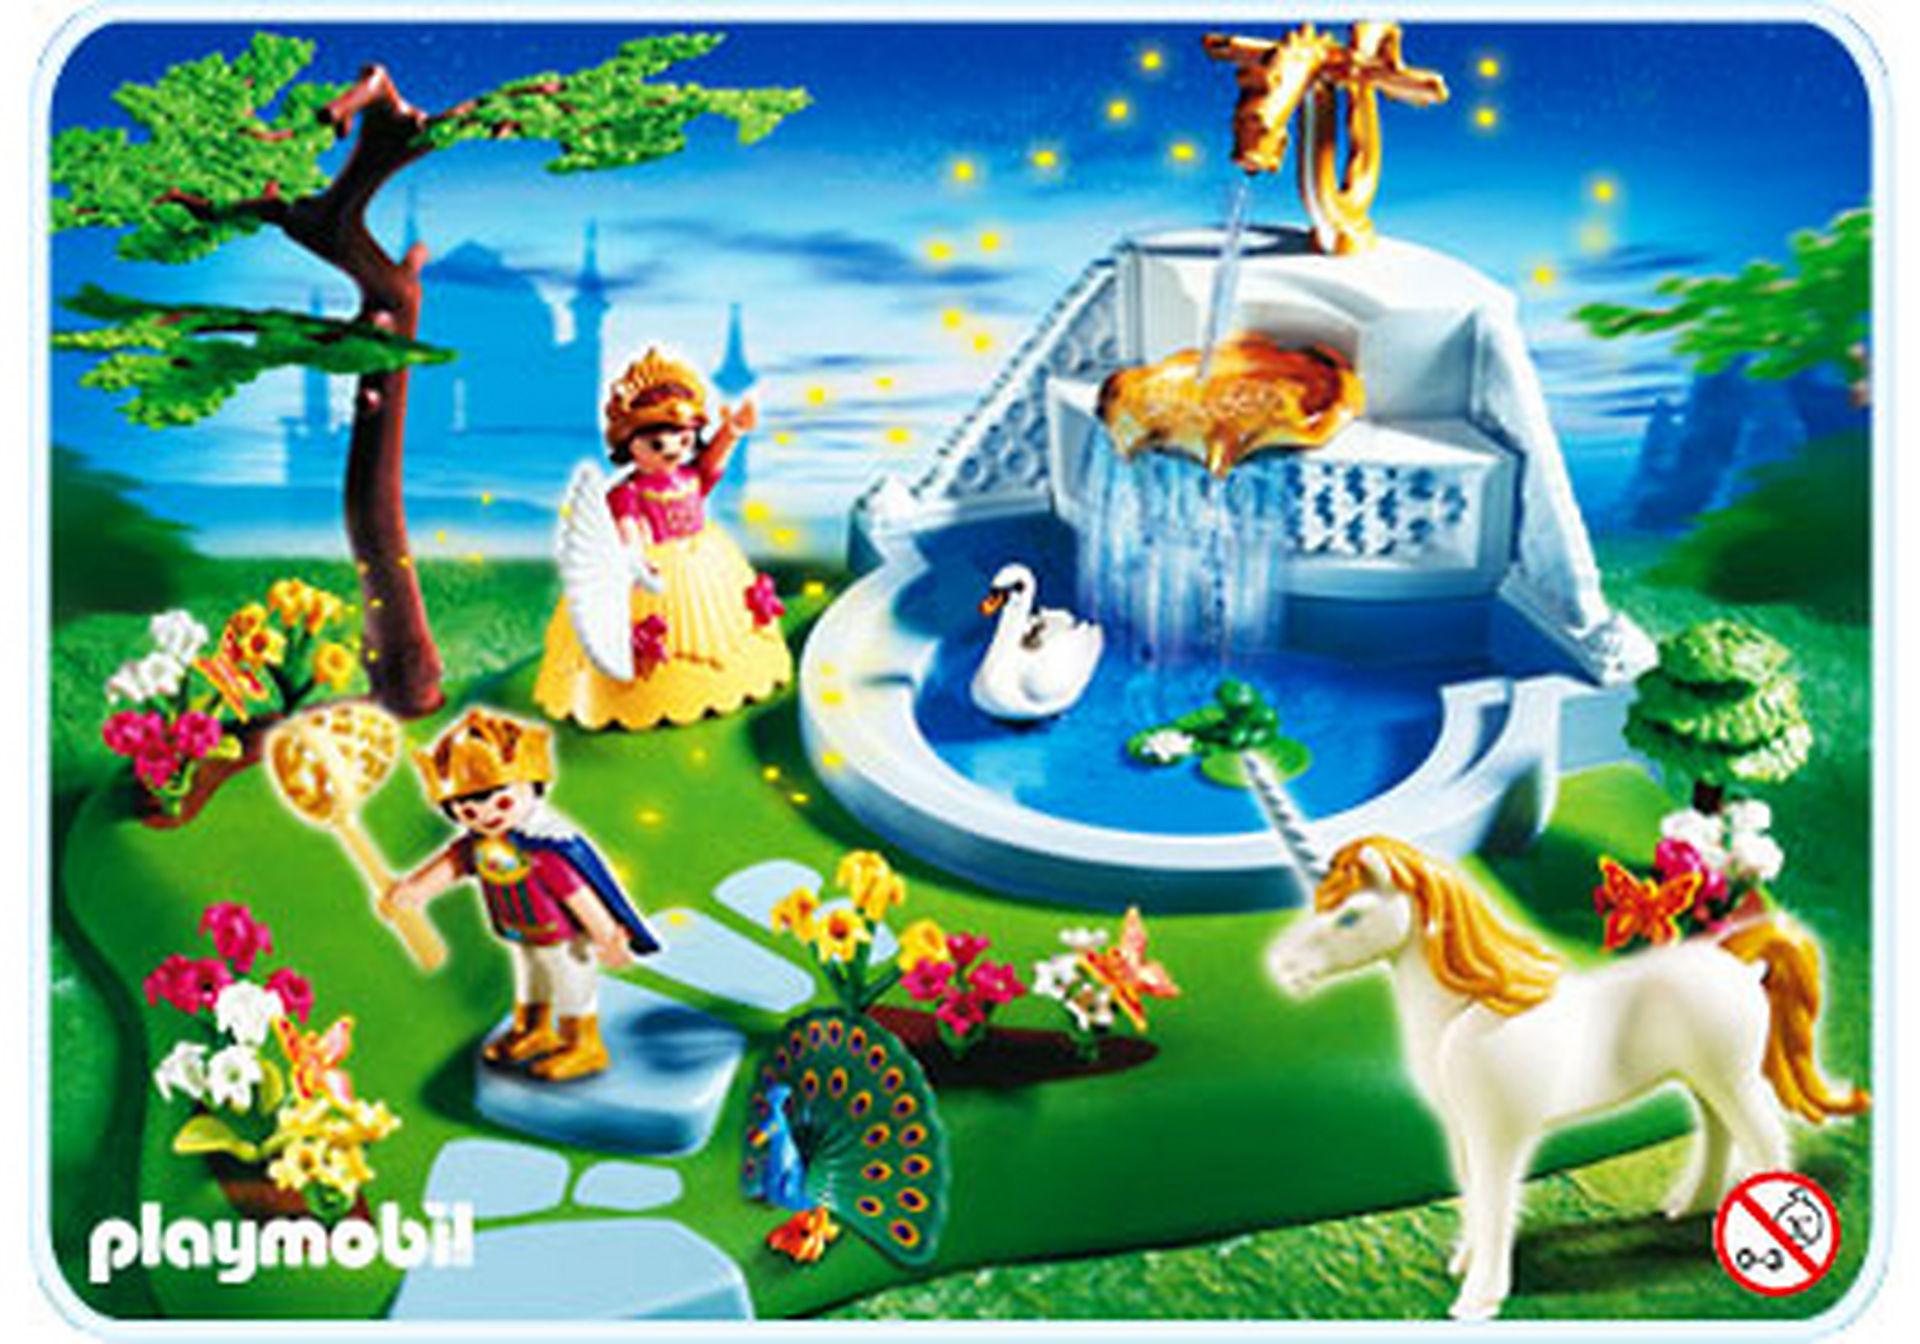 http://media.playmobil.com/i/playmobil/4137-A_product_detail/SuperSet Märchenschlosspark